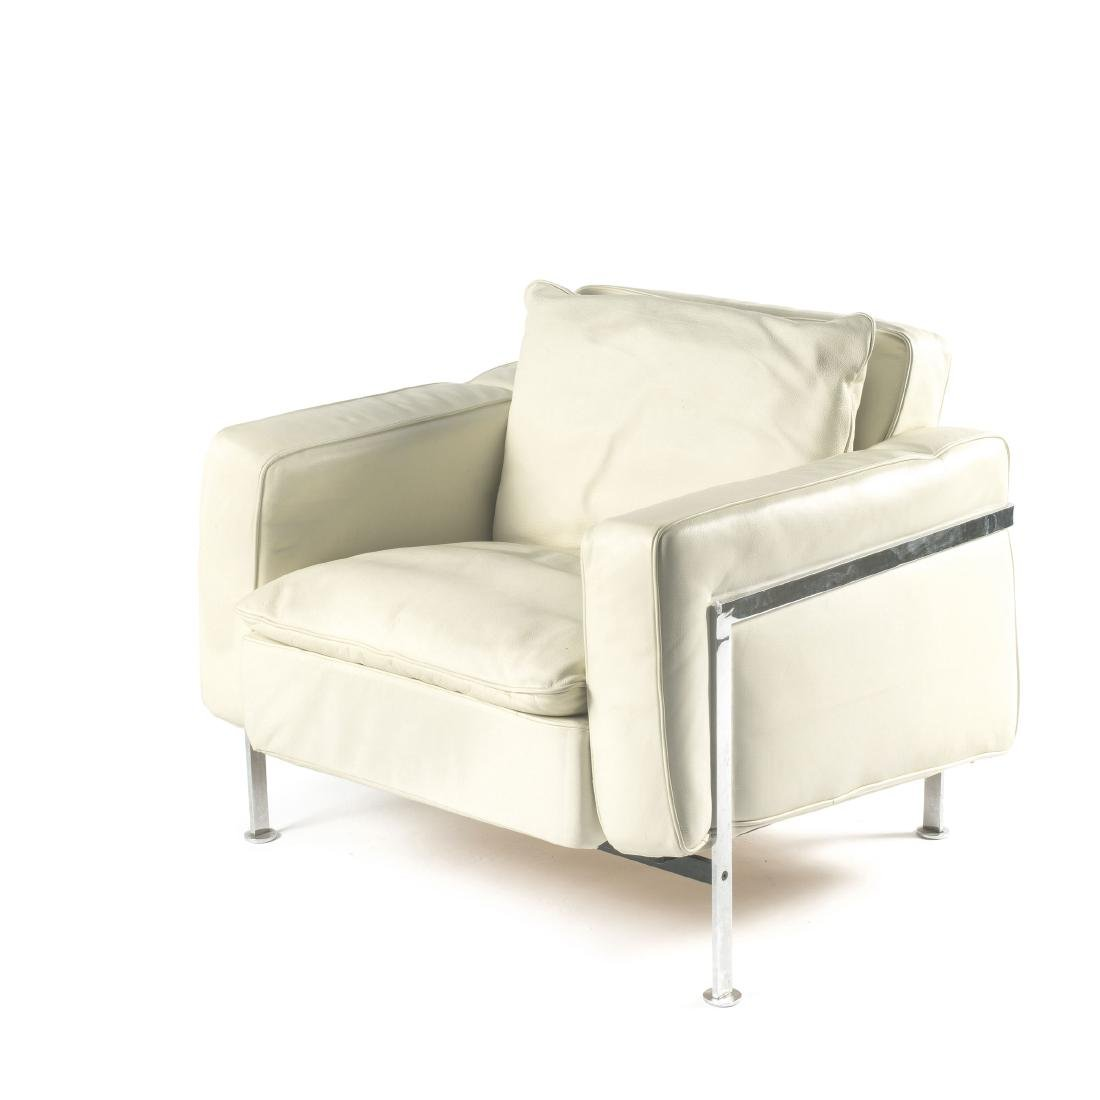 'RH 302' armchair for the 'Swiss Design' collection,